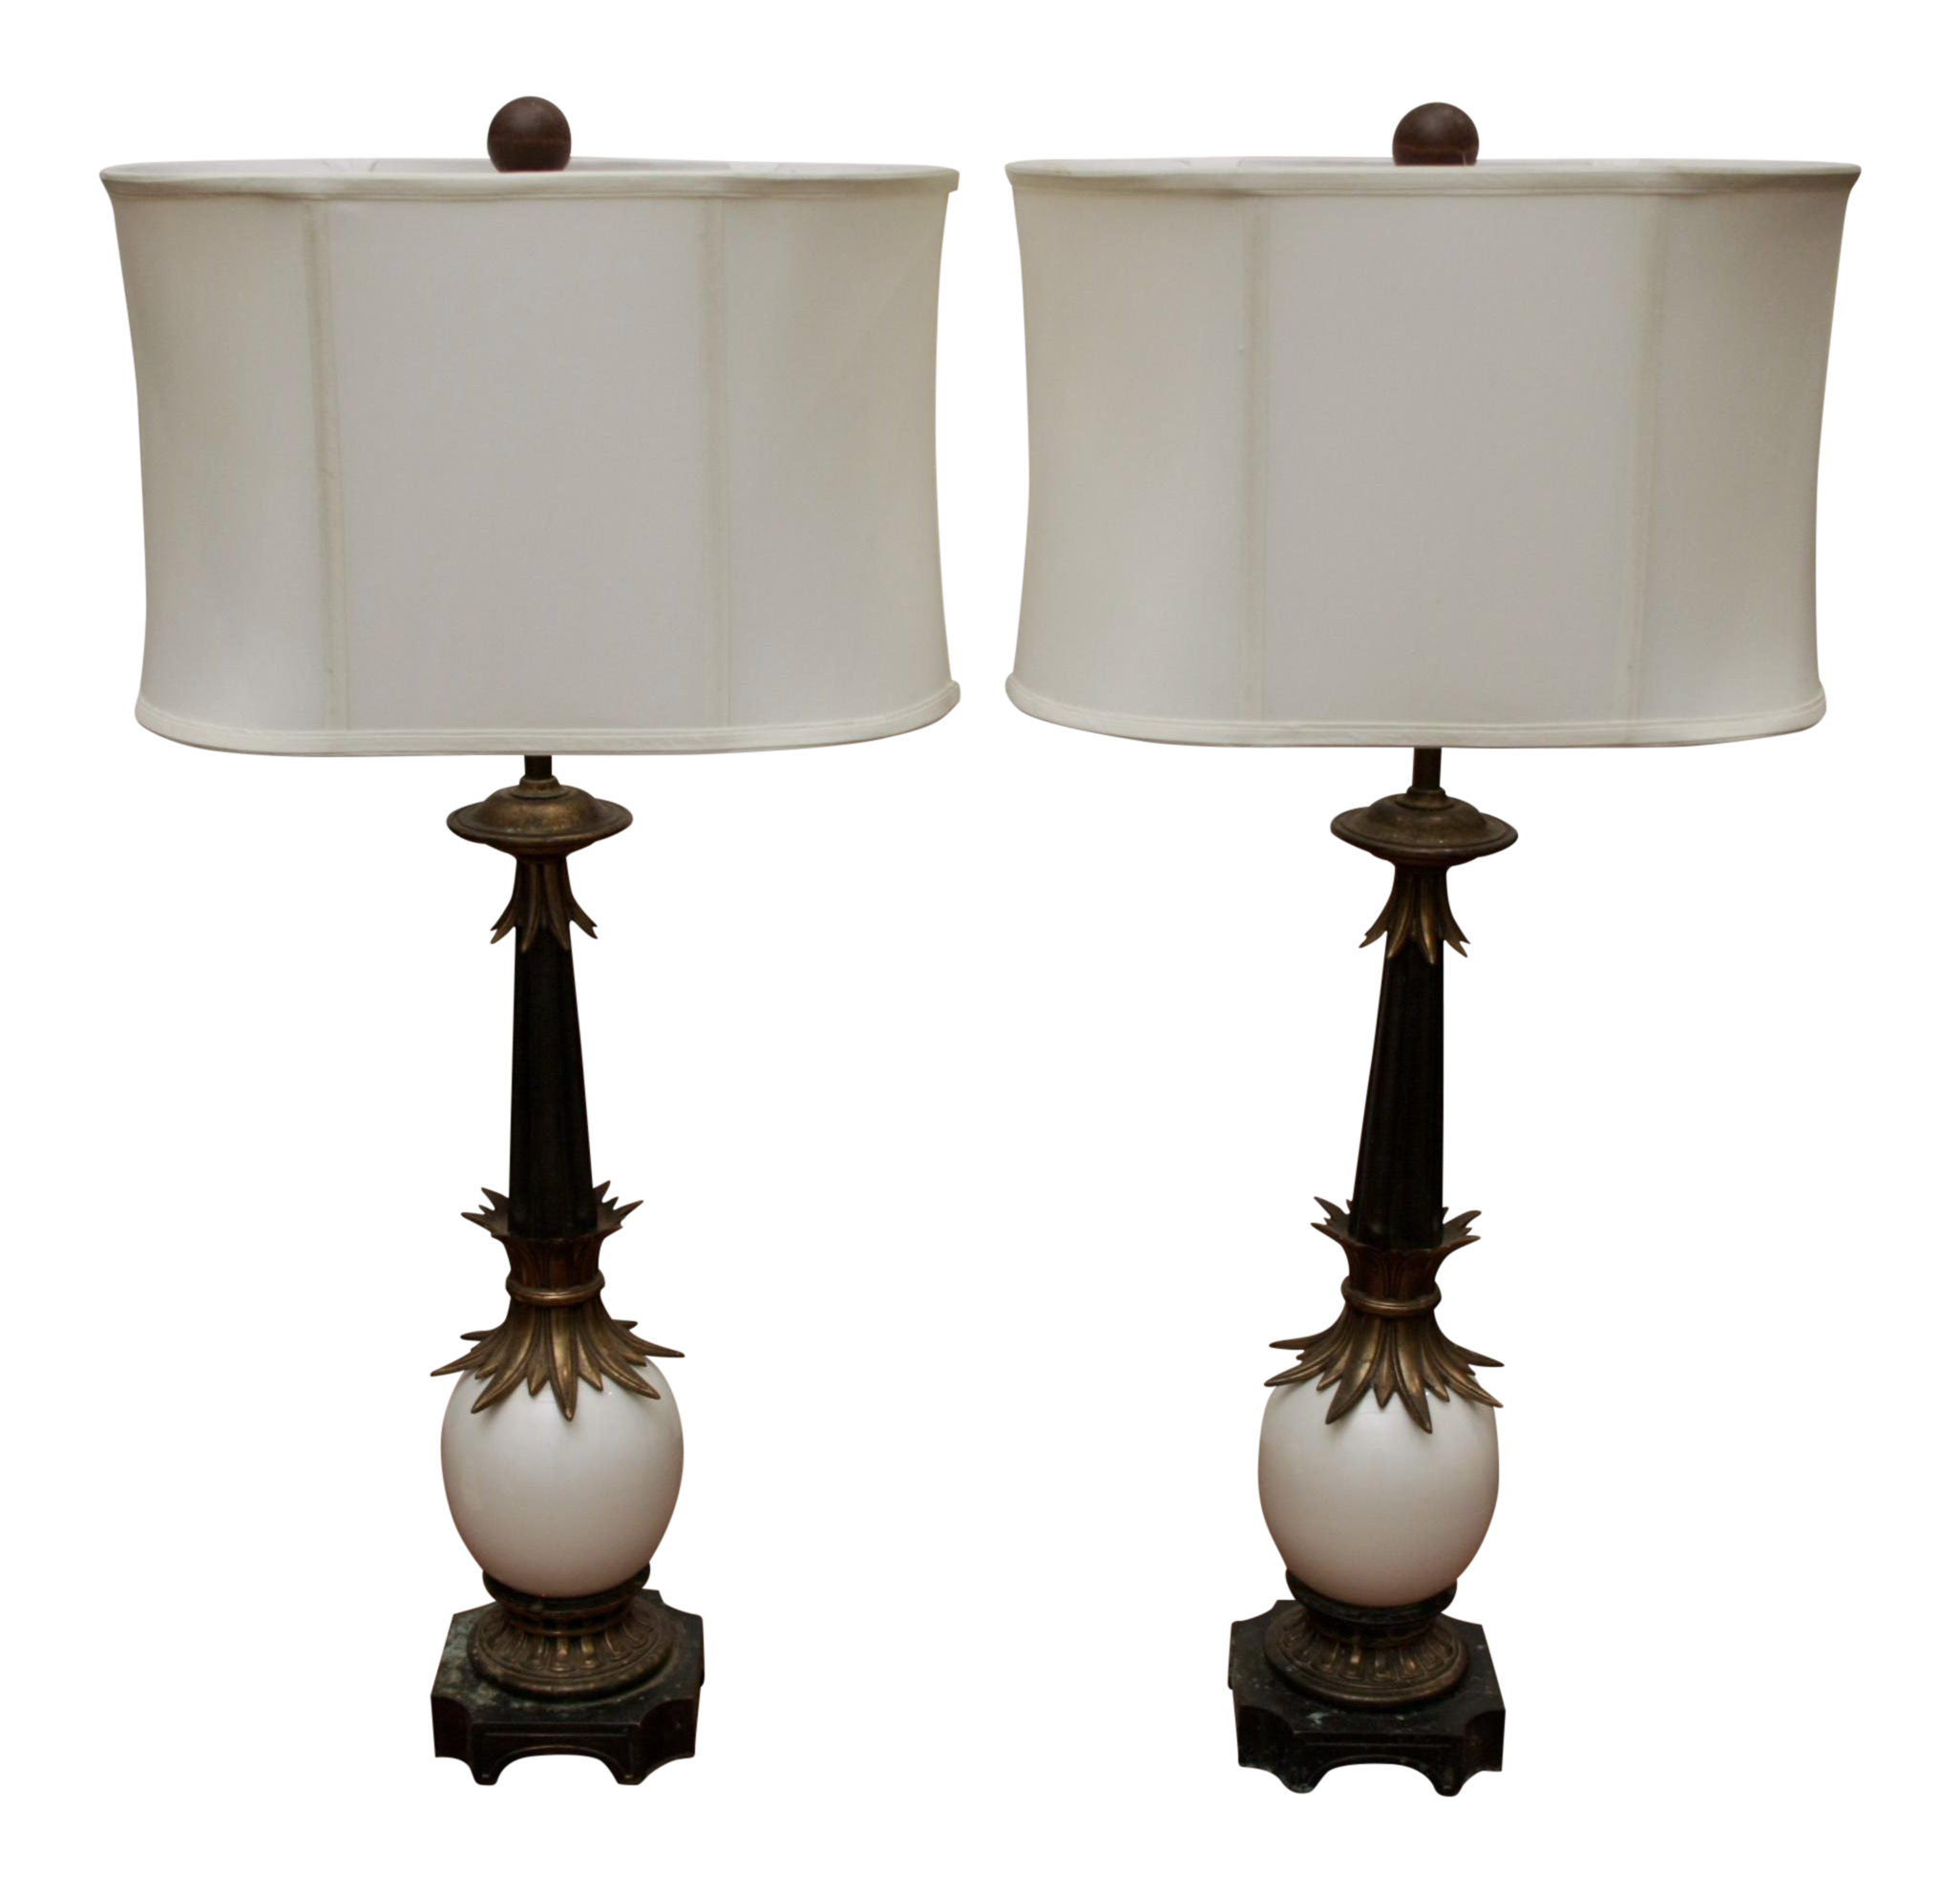 Stiffel ostrich egg brass lamps a pair image 1 of 11